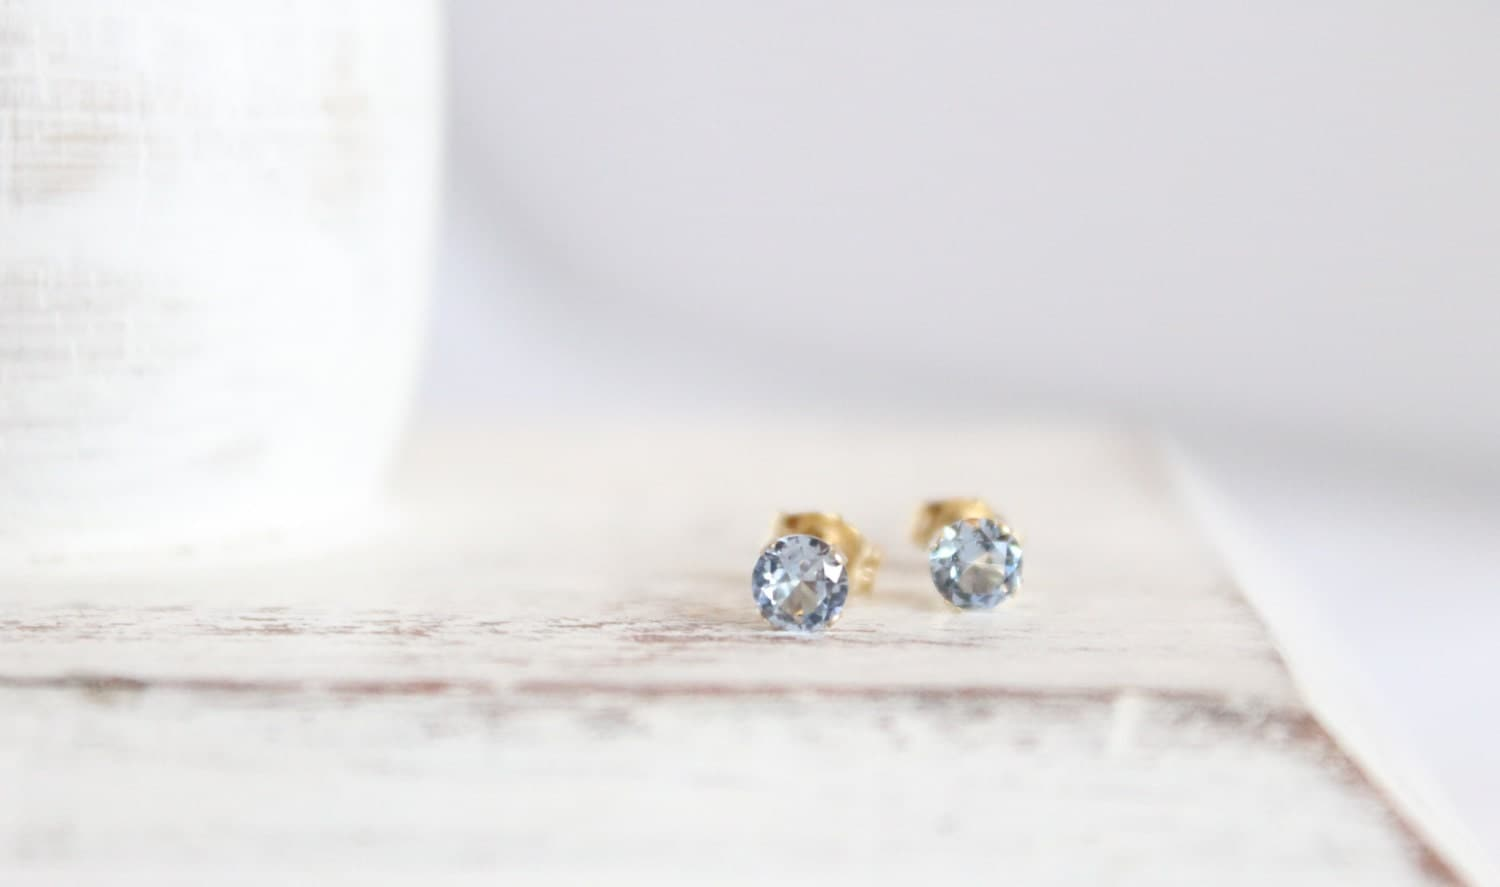 14k Gold And Aquamarine Earrings March Birthstone Studs